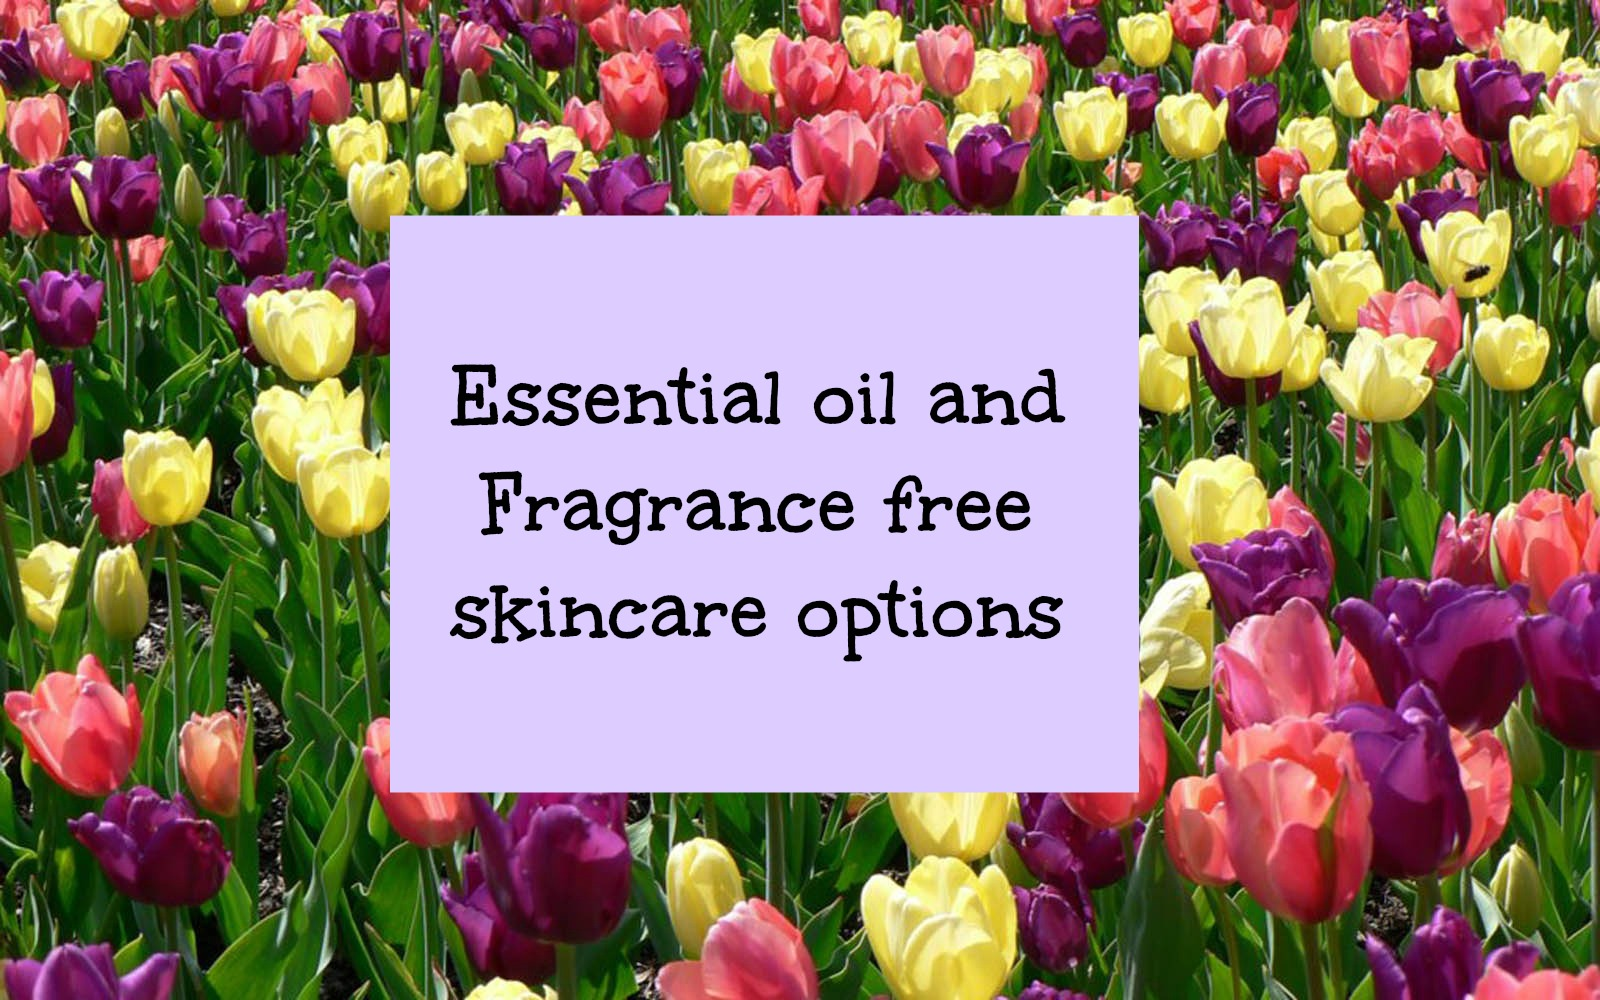 Essential oil and Fragrance free skincare options